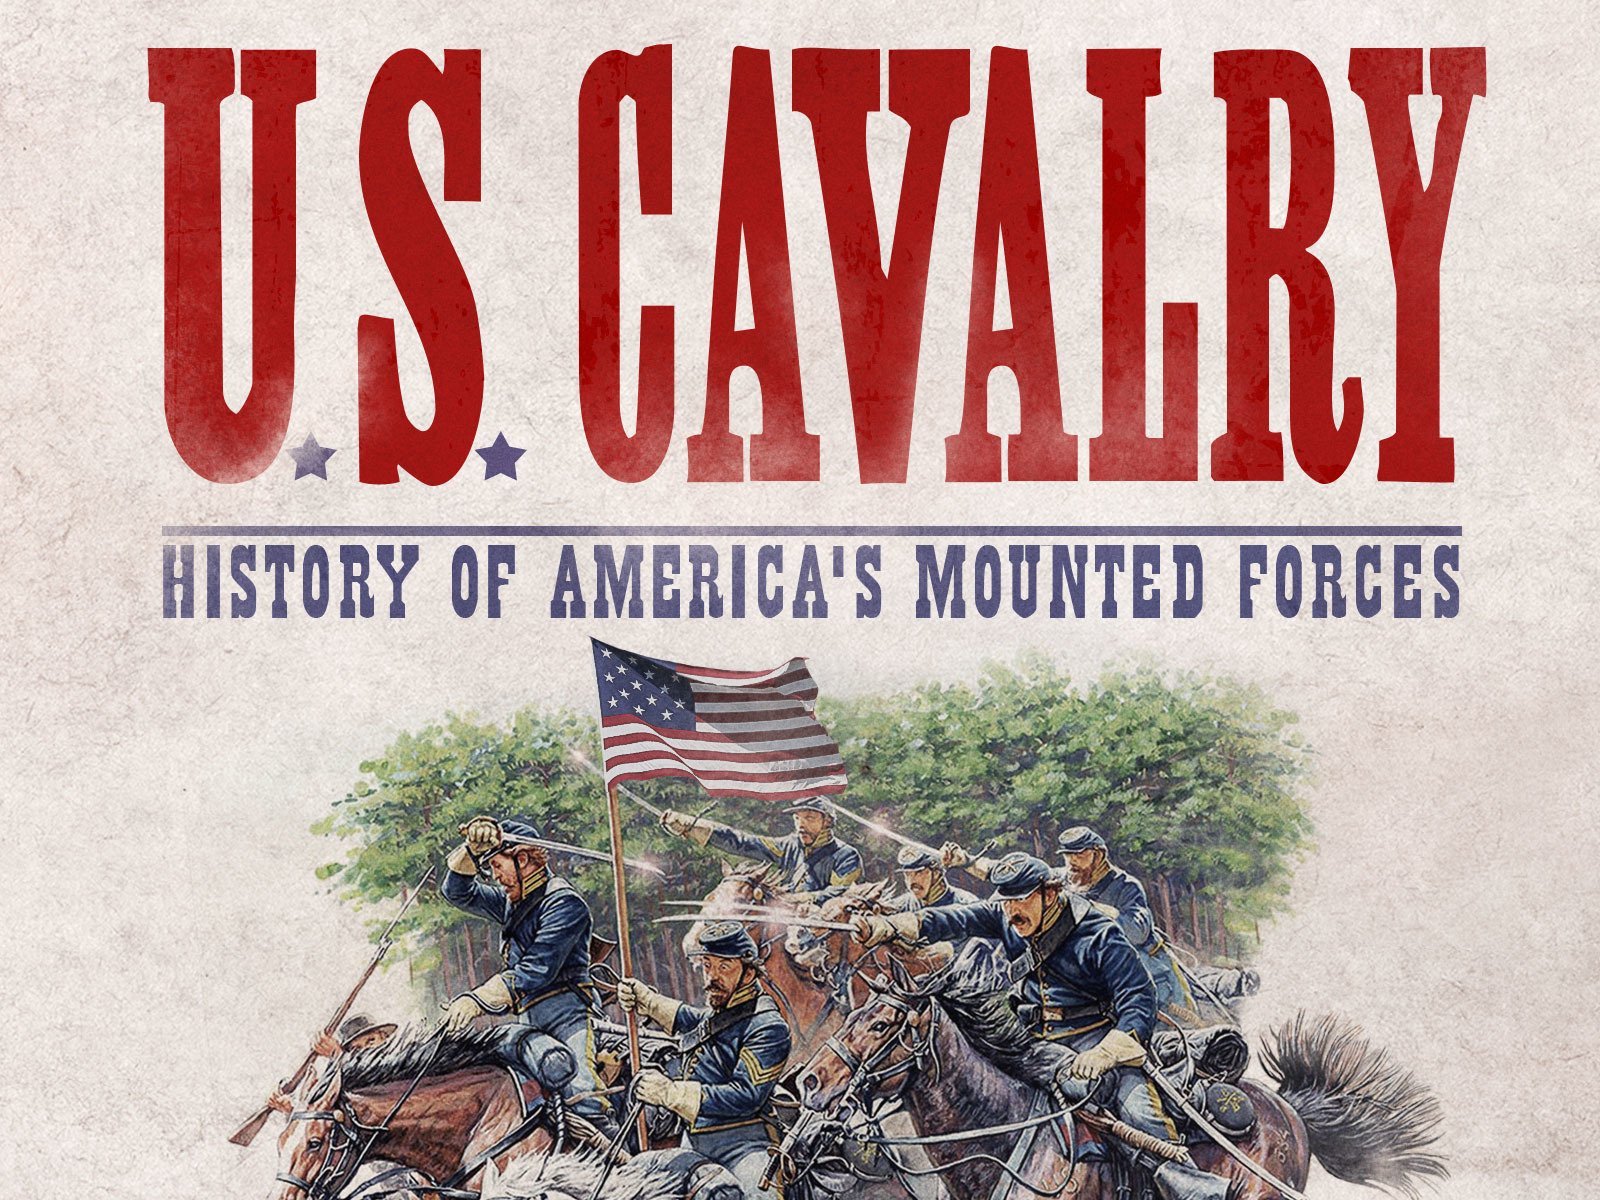 U.S. Cavalry: History of America's Mounted Forces - Season 1